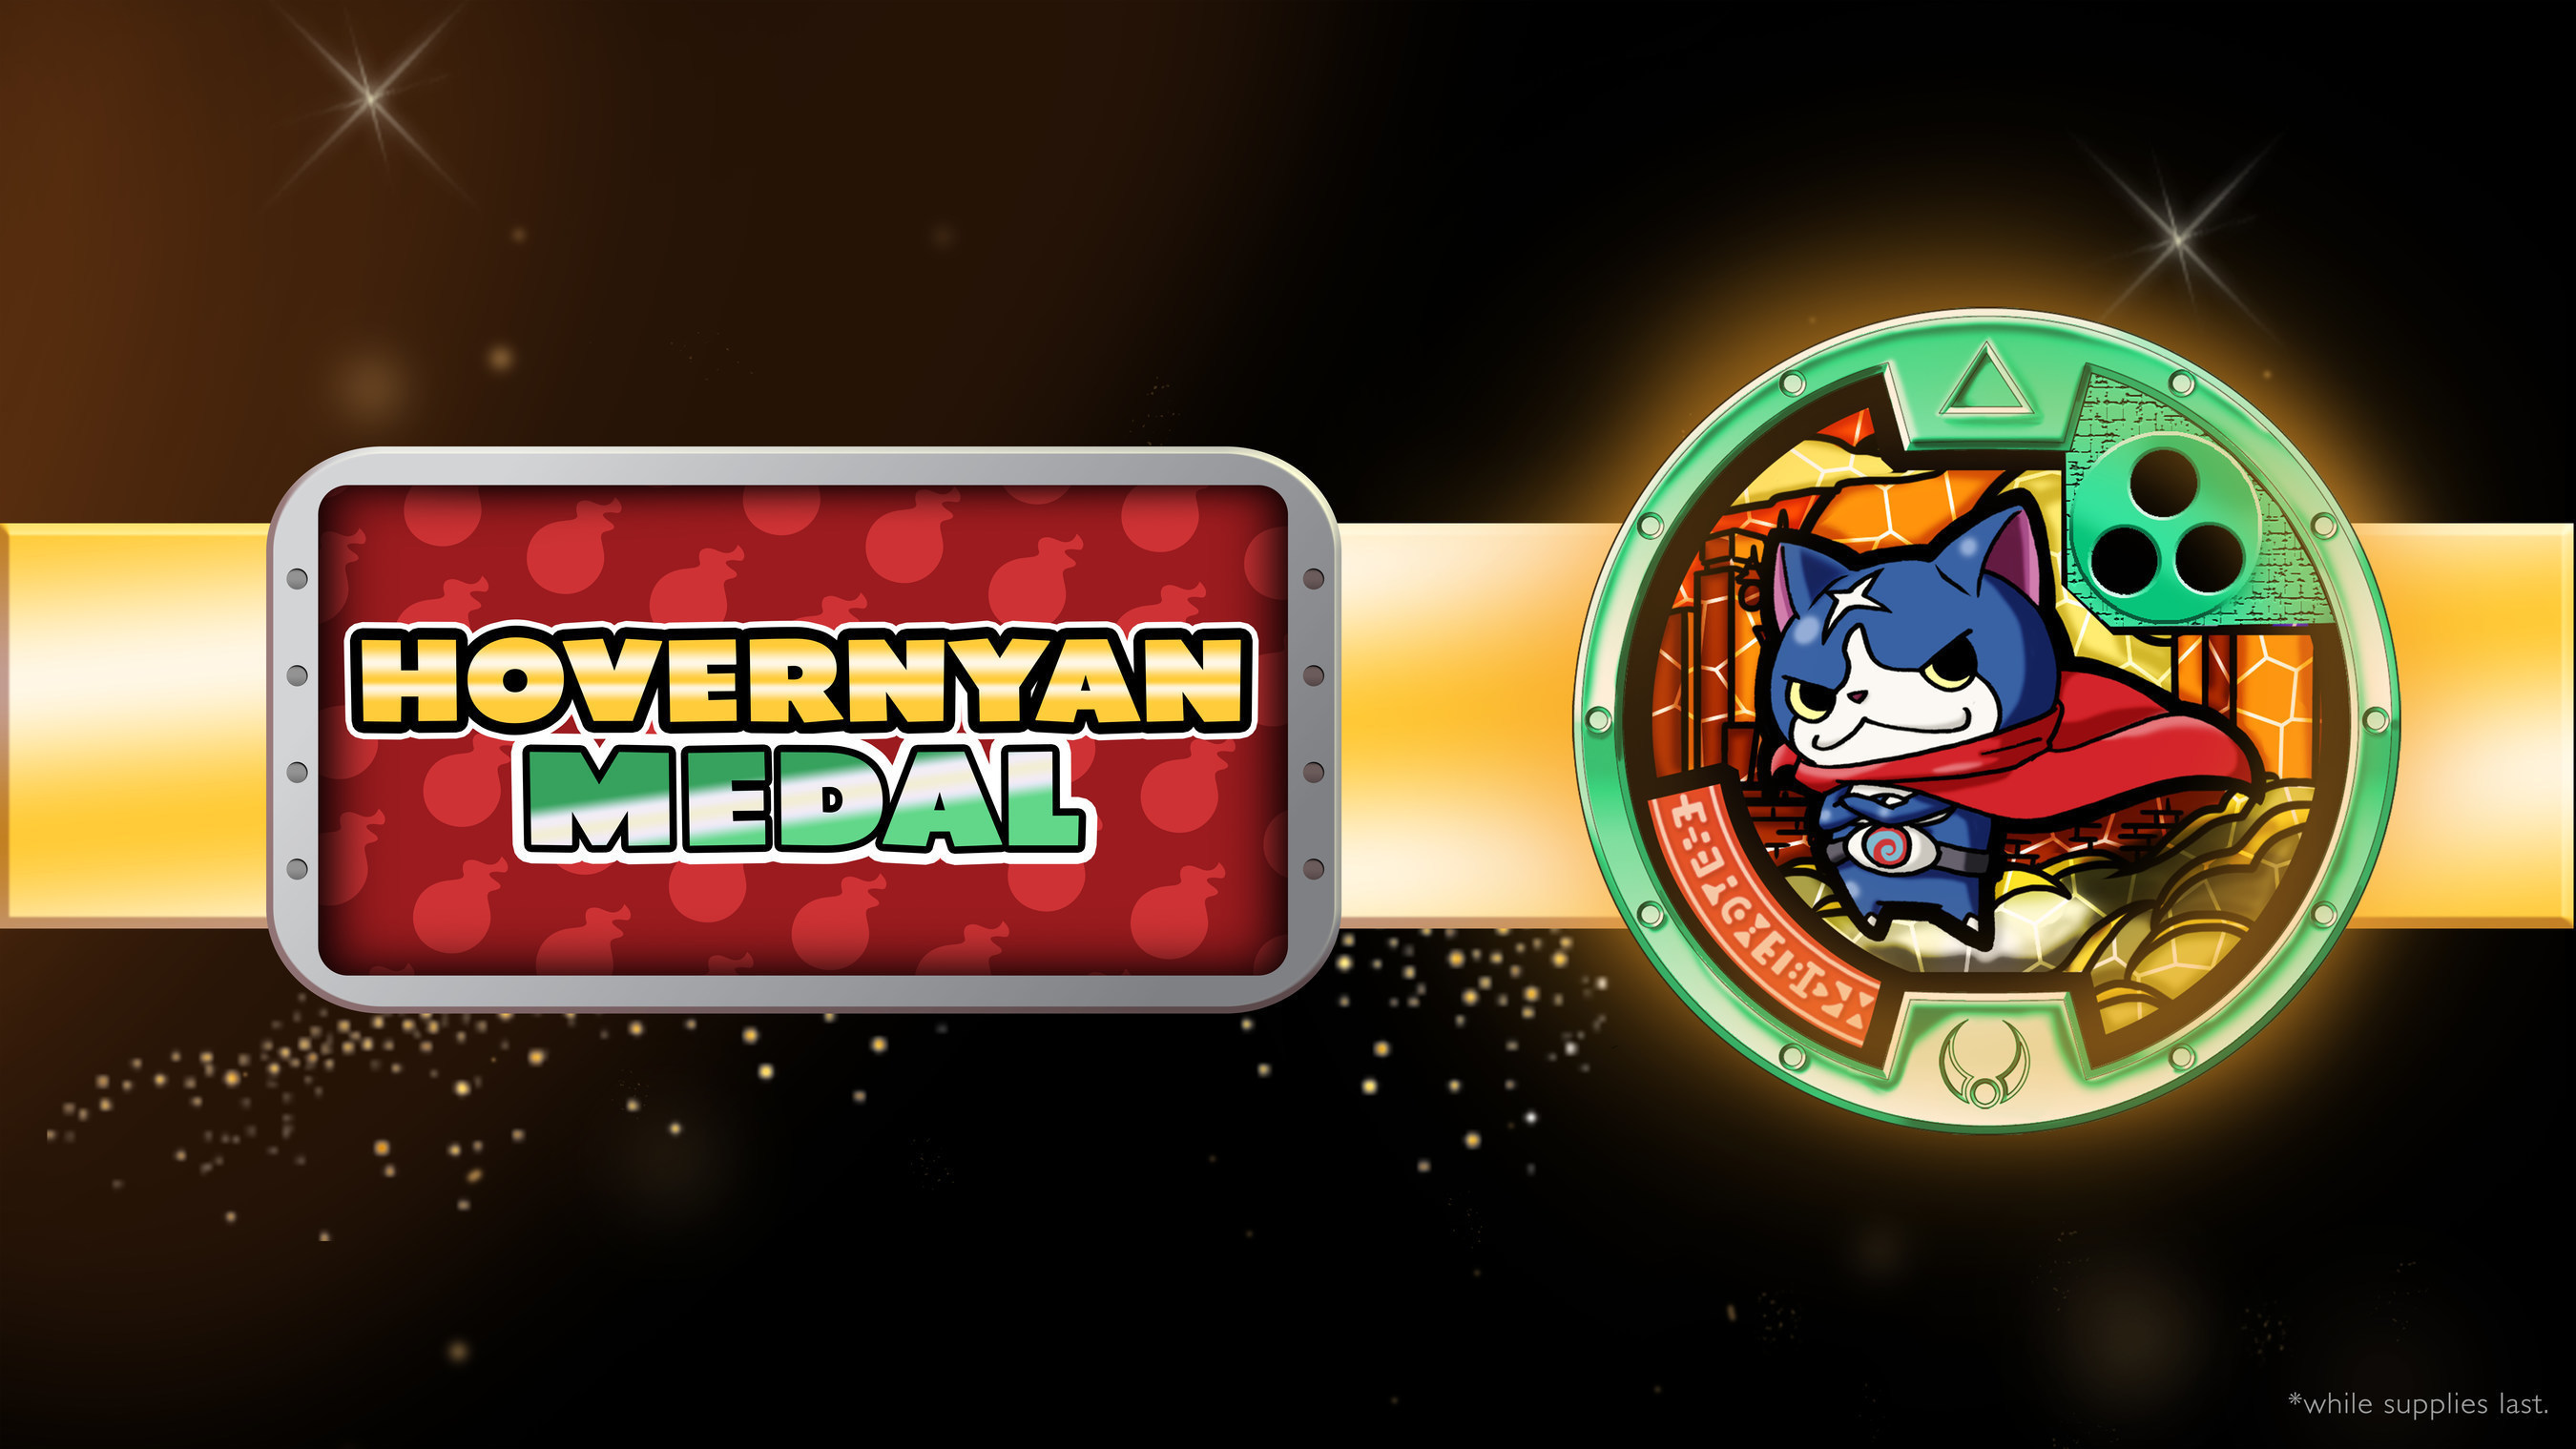 """Enter a sweepstakes to win one of more than a thousand prizes, including exclusive Hovernyan """"YO-MOTION"""" MEDALS!"""